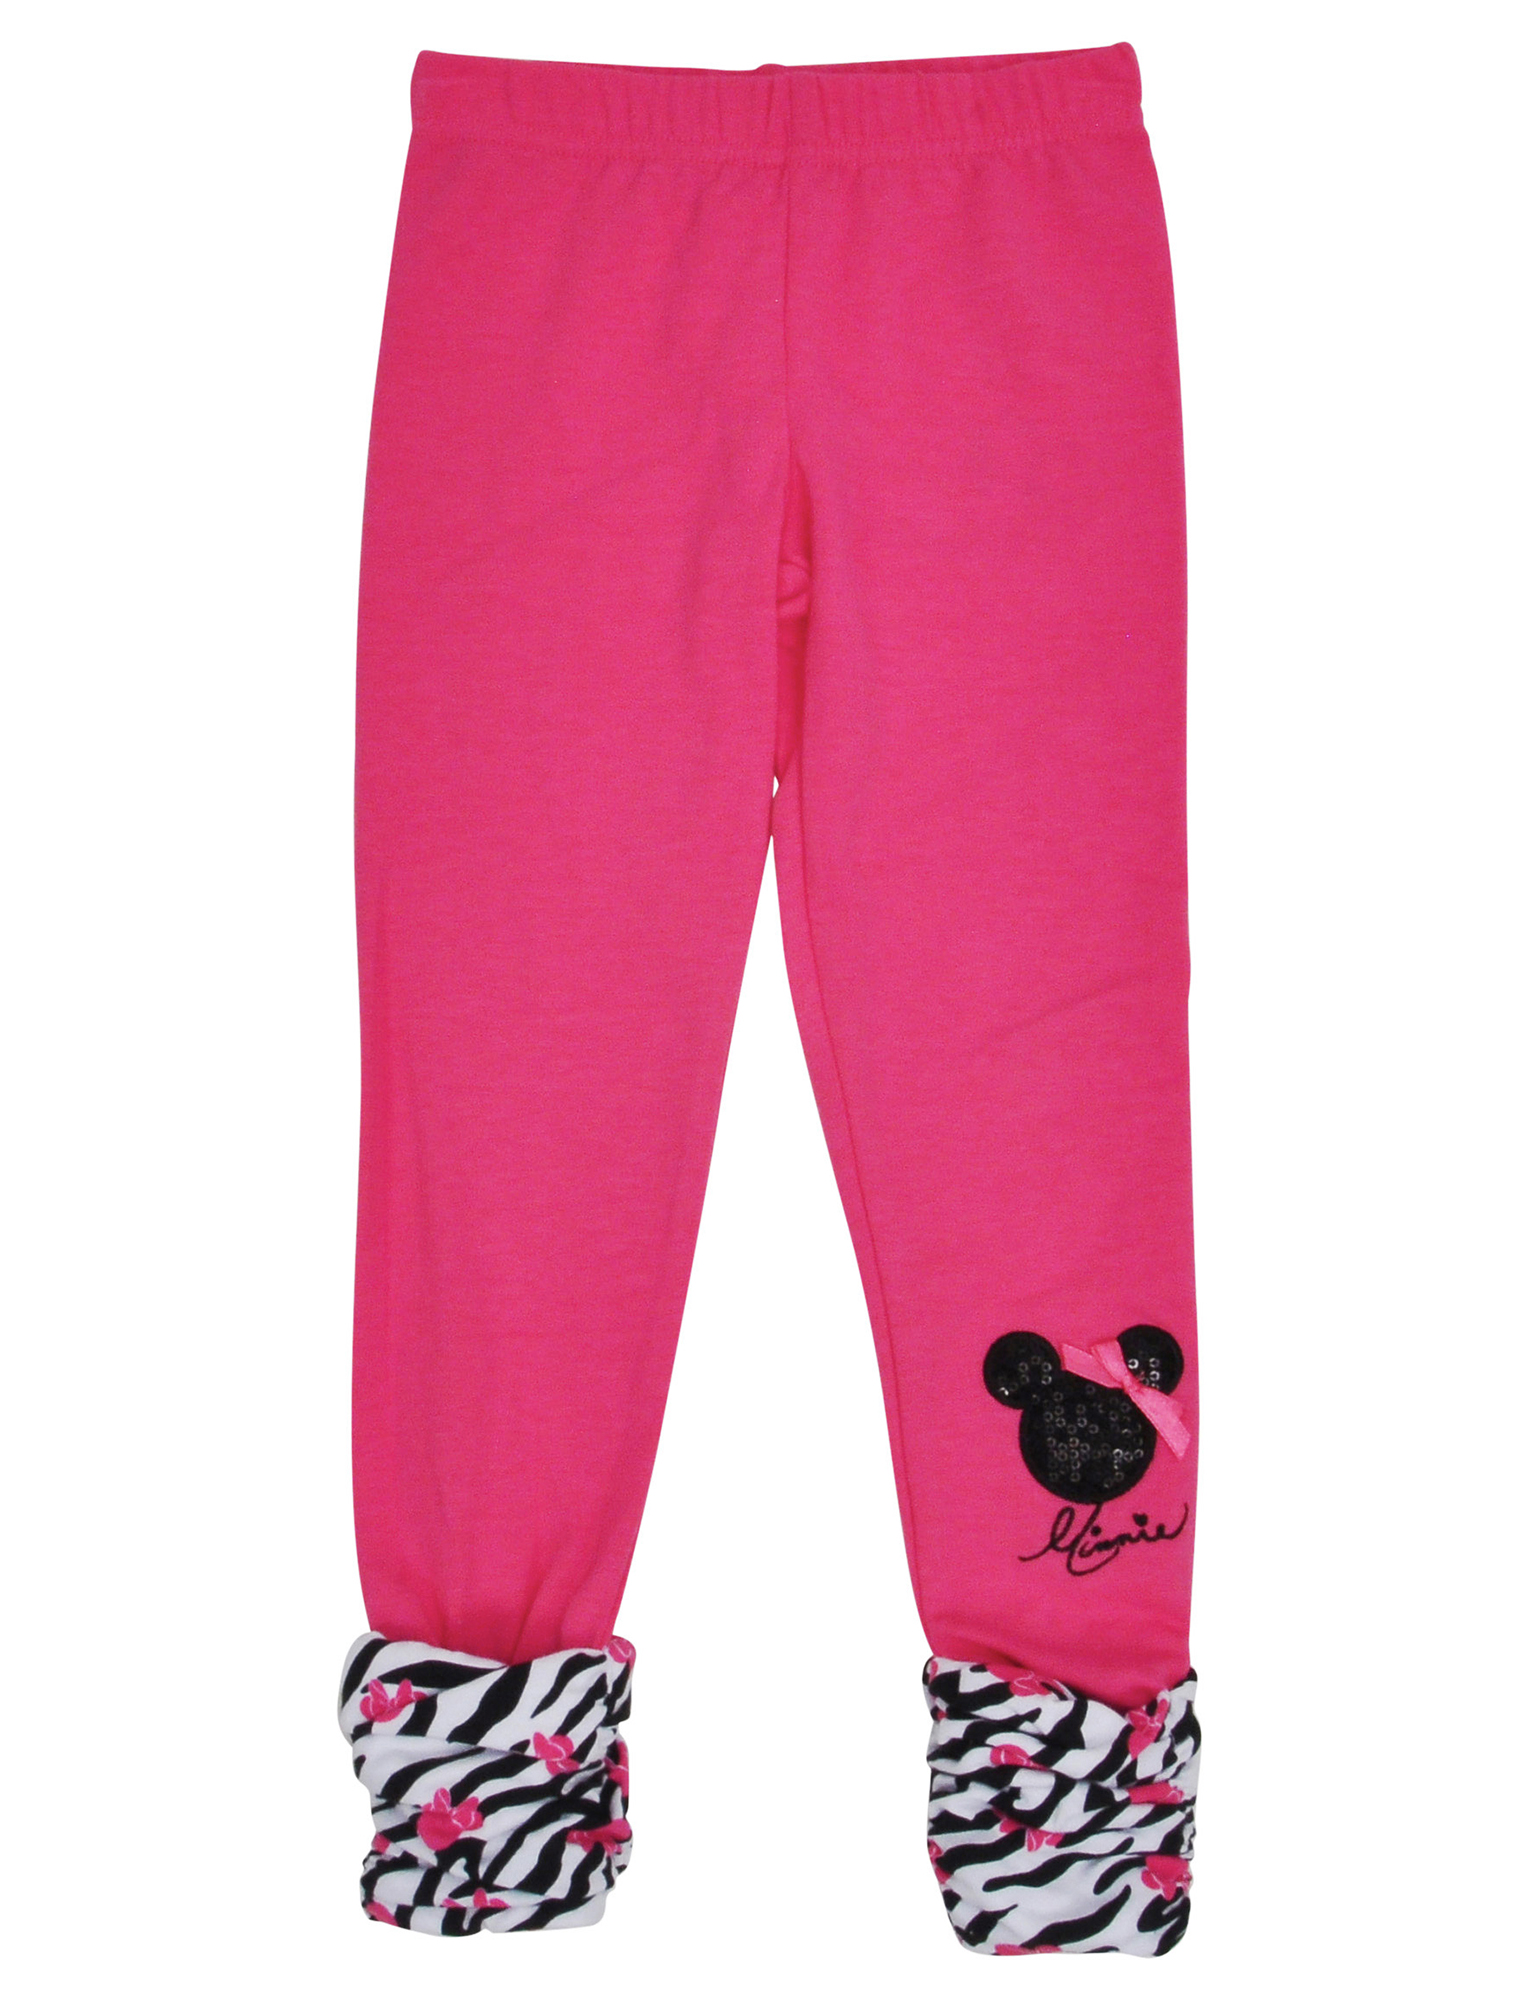 Girls Minnie Mouse Sequin Zebra Print Leggings Pink